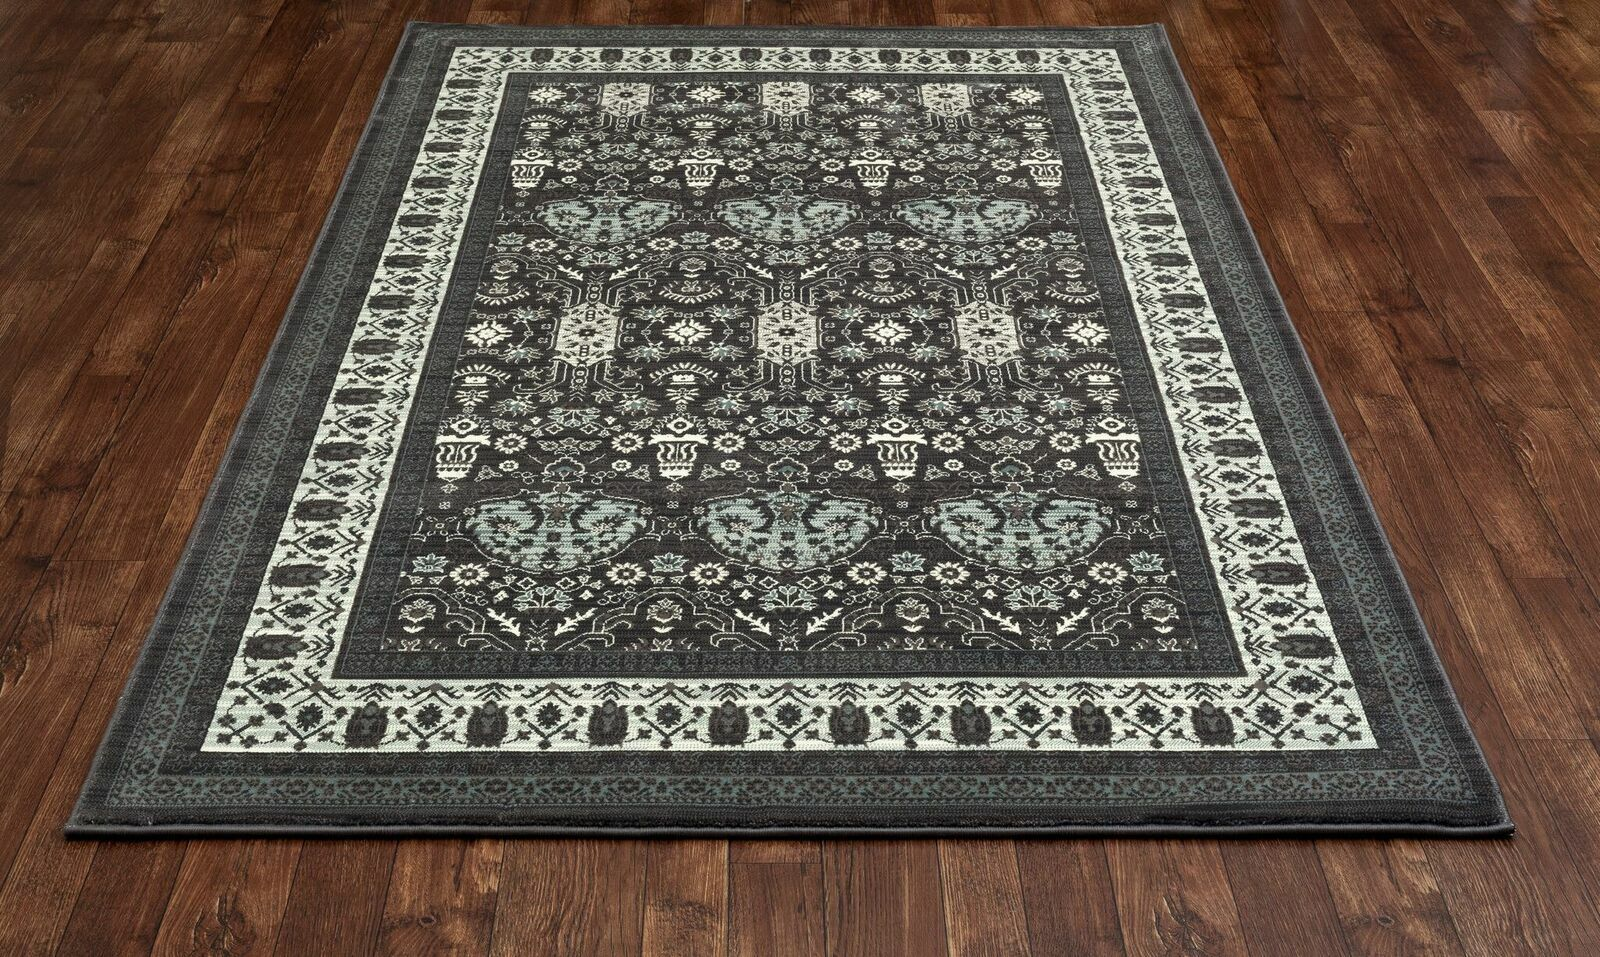 Channel Gray Area Rug Rug Size: 6'7 x 9'6